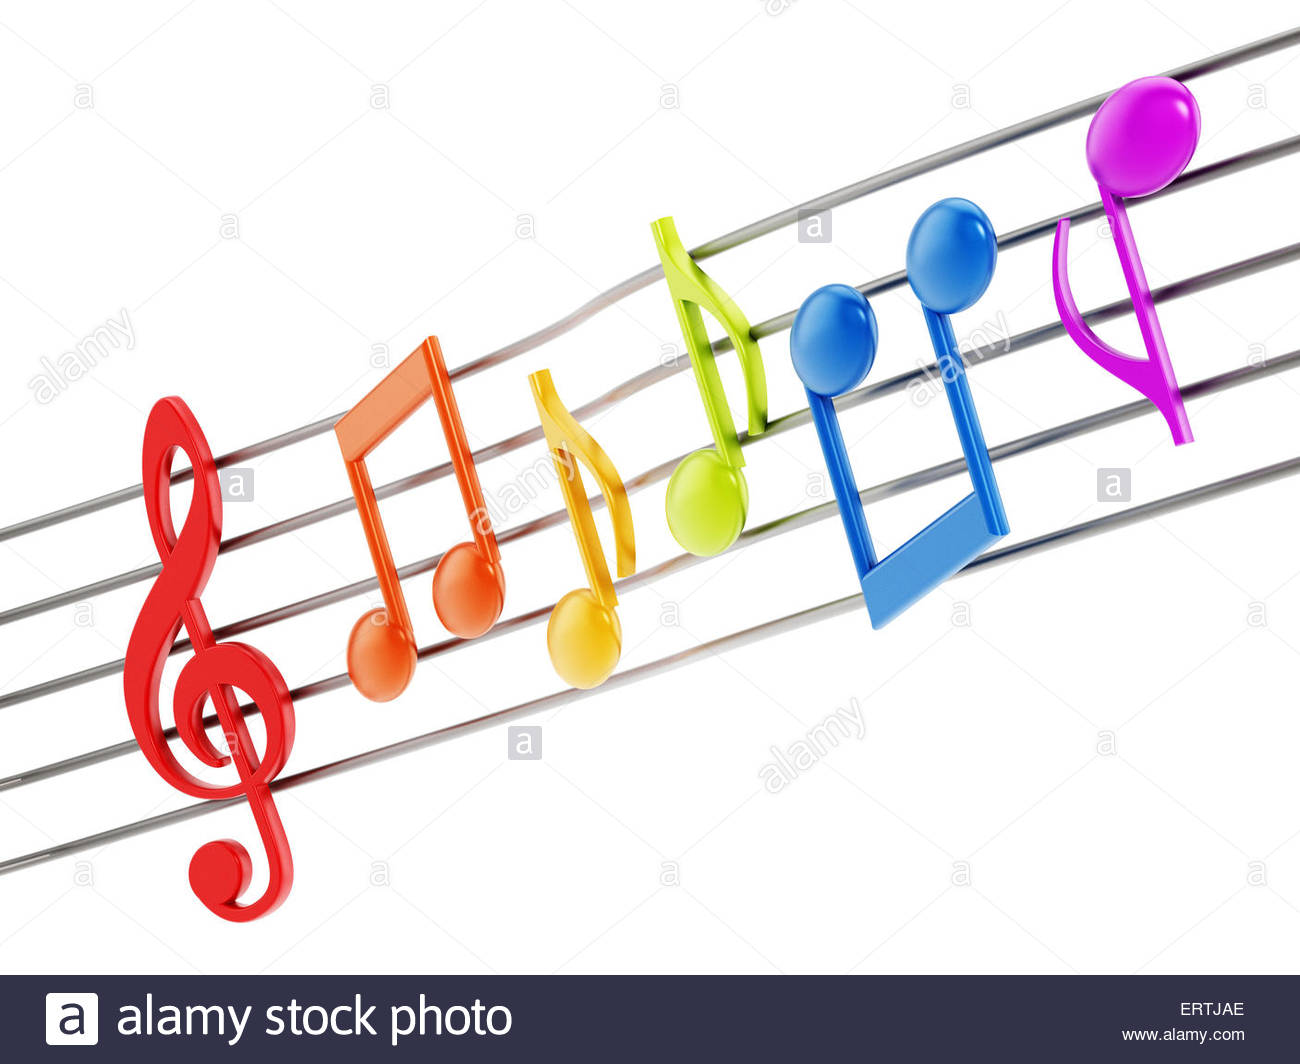 1300x1064 Music Symbol No People Note Stock Photos Amp Music Symbol No People